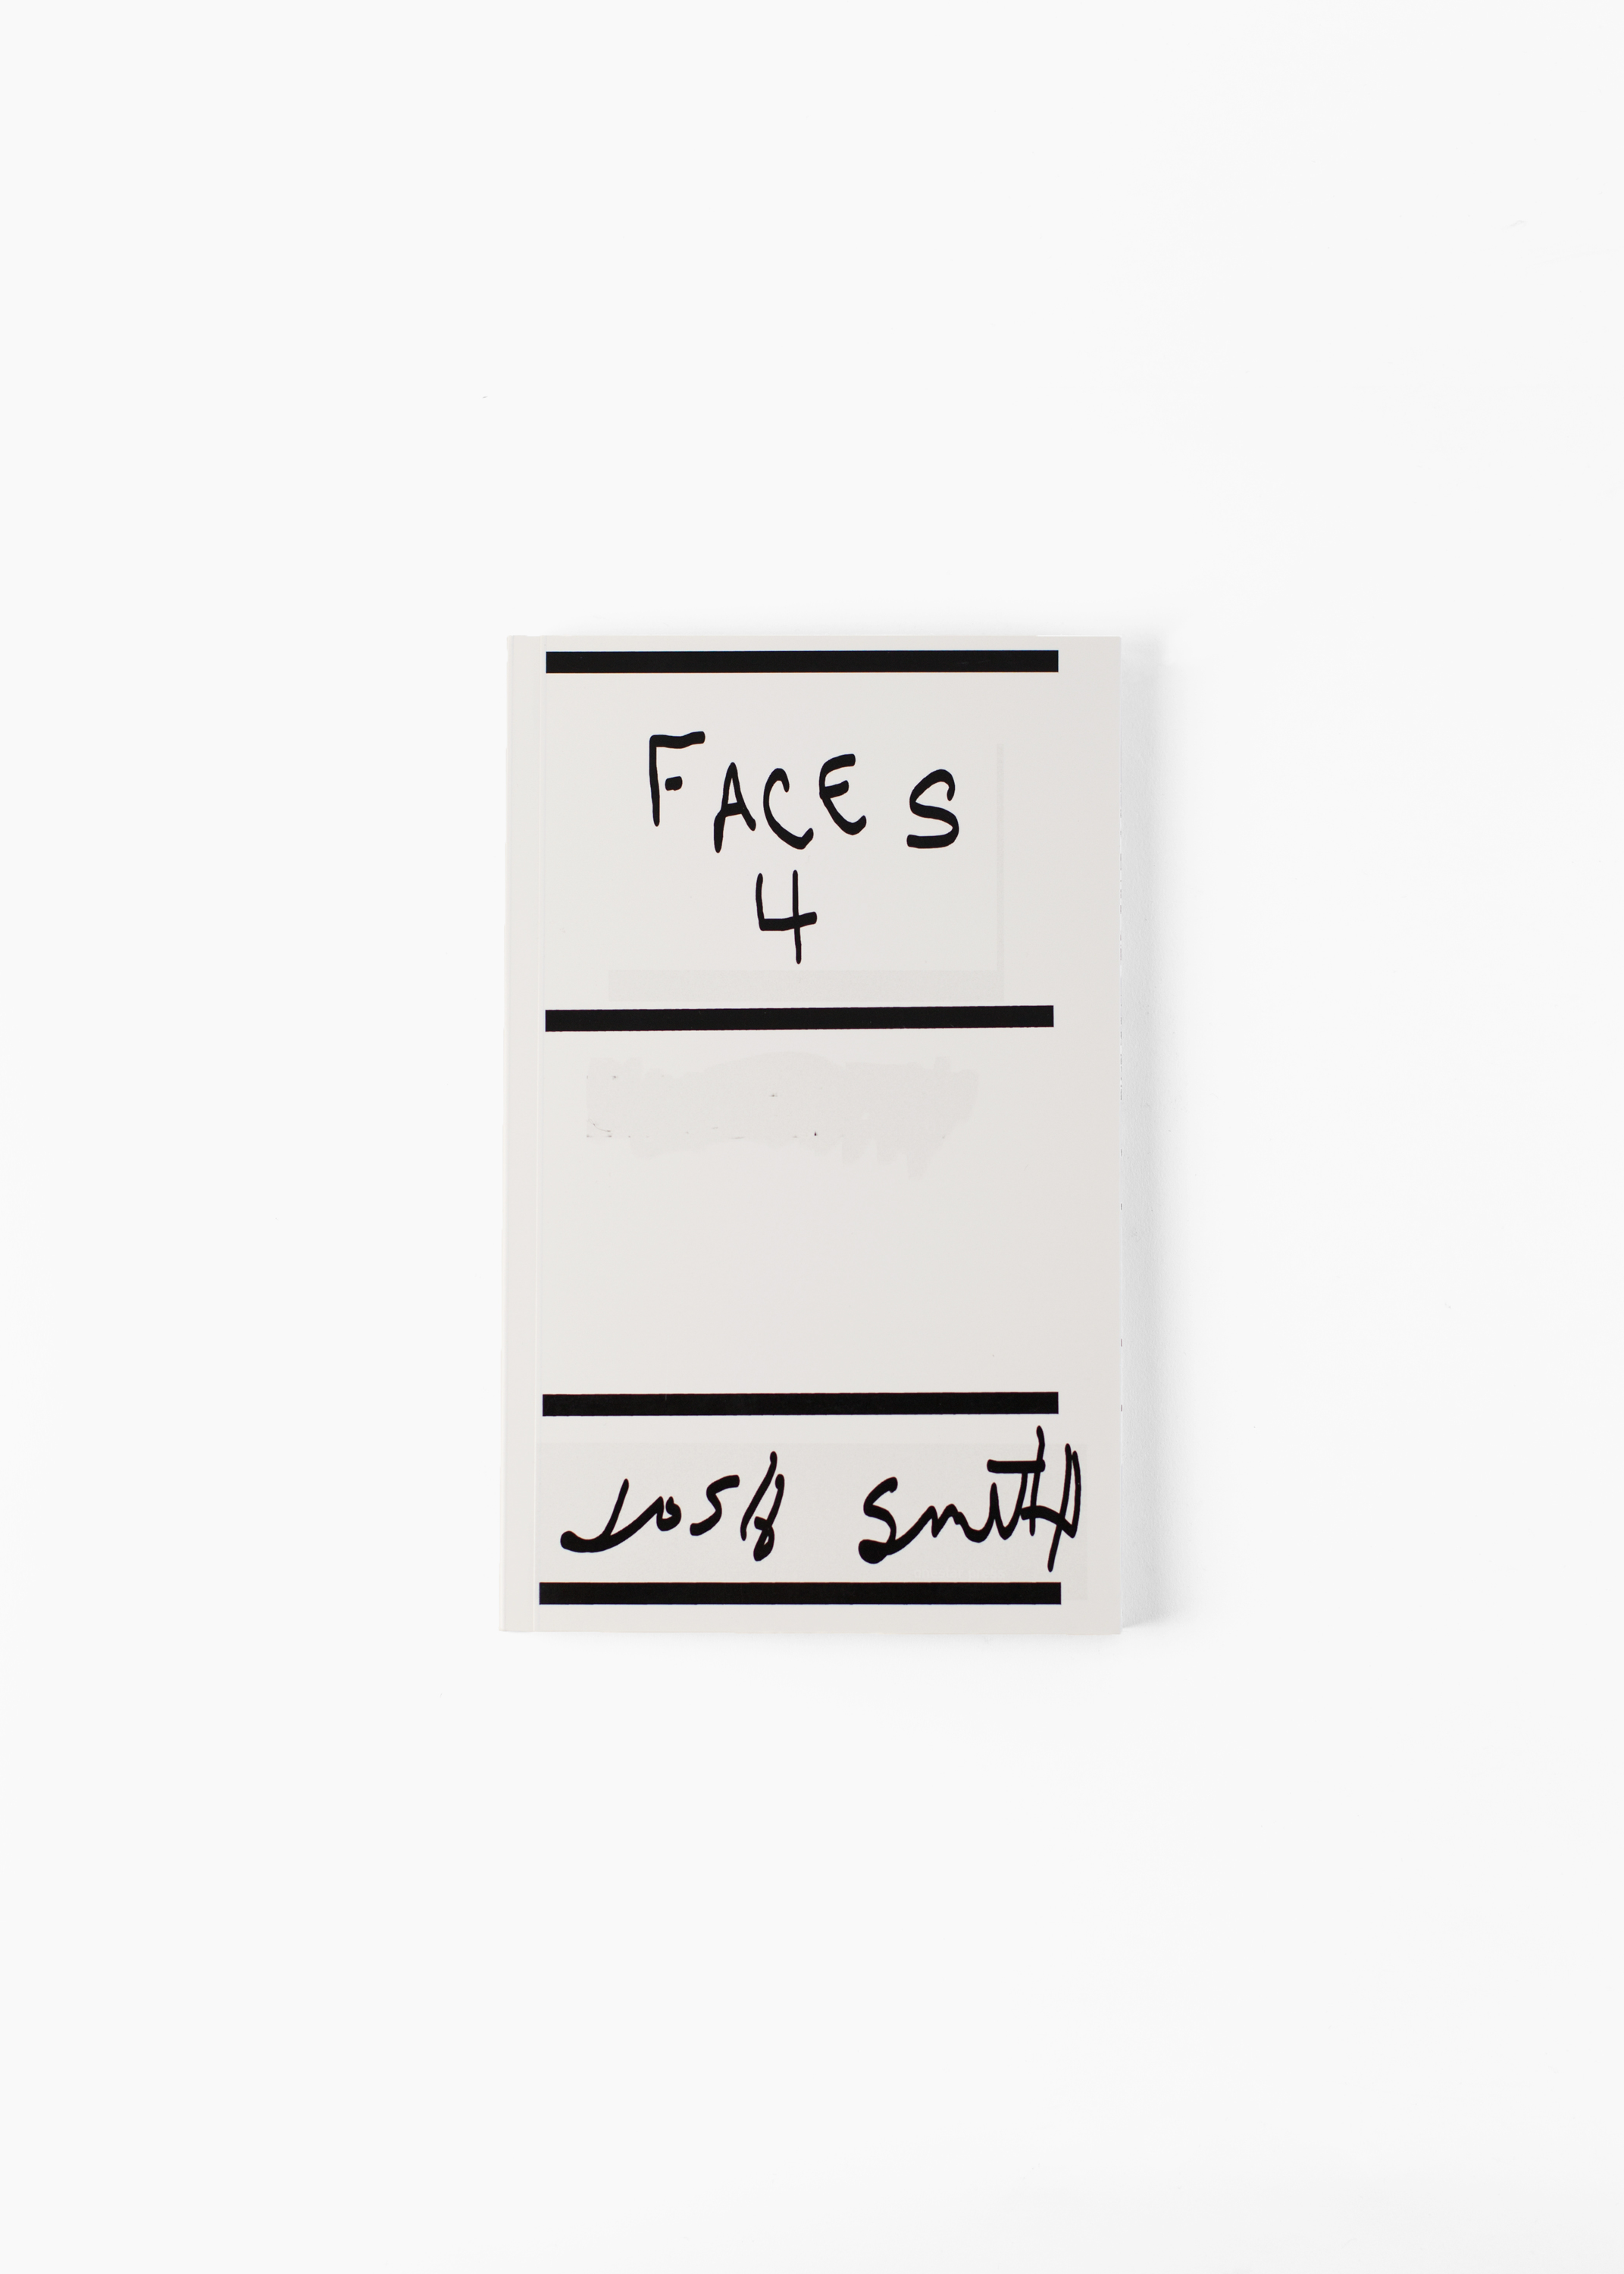 Josh Smith - Faces 4</br>150 pages 14 x 22.5 cm</br>Onestar Press 2006</br>Sold out